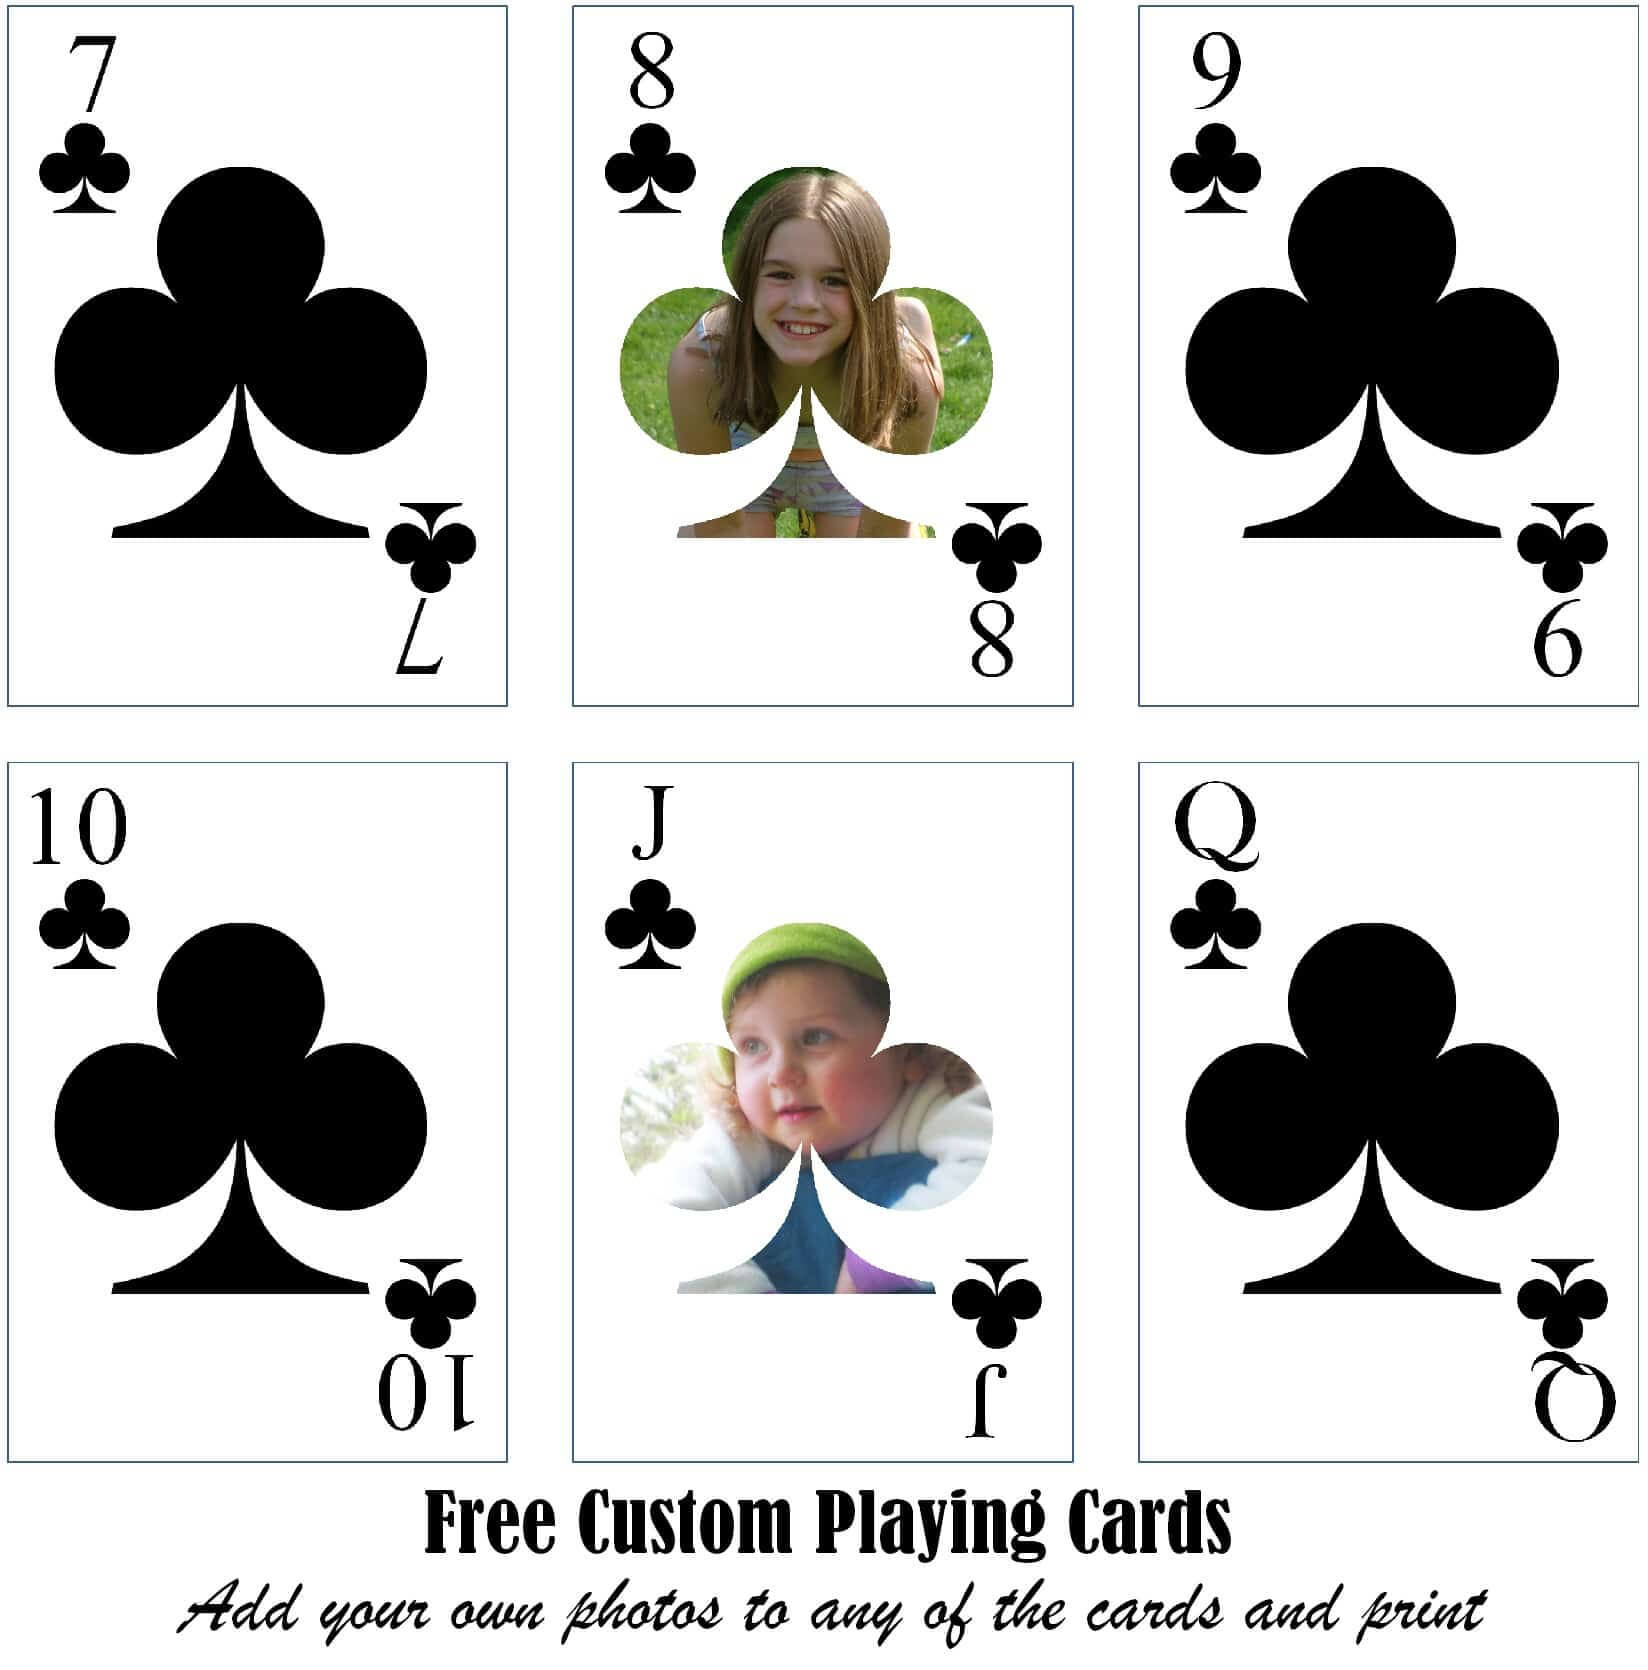 Free Printable Custom Playing Cards | Add Your Photo And/or Text Inside Custom Playing Card Template